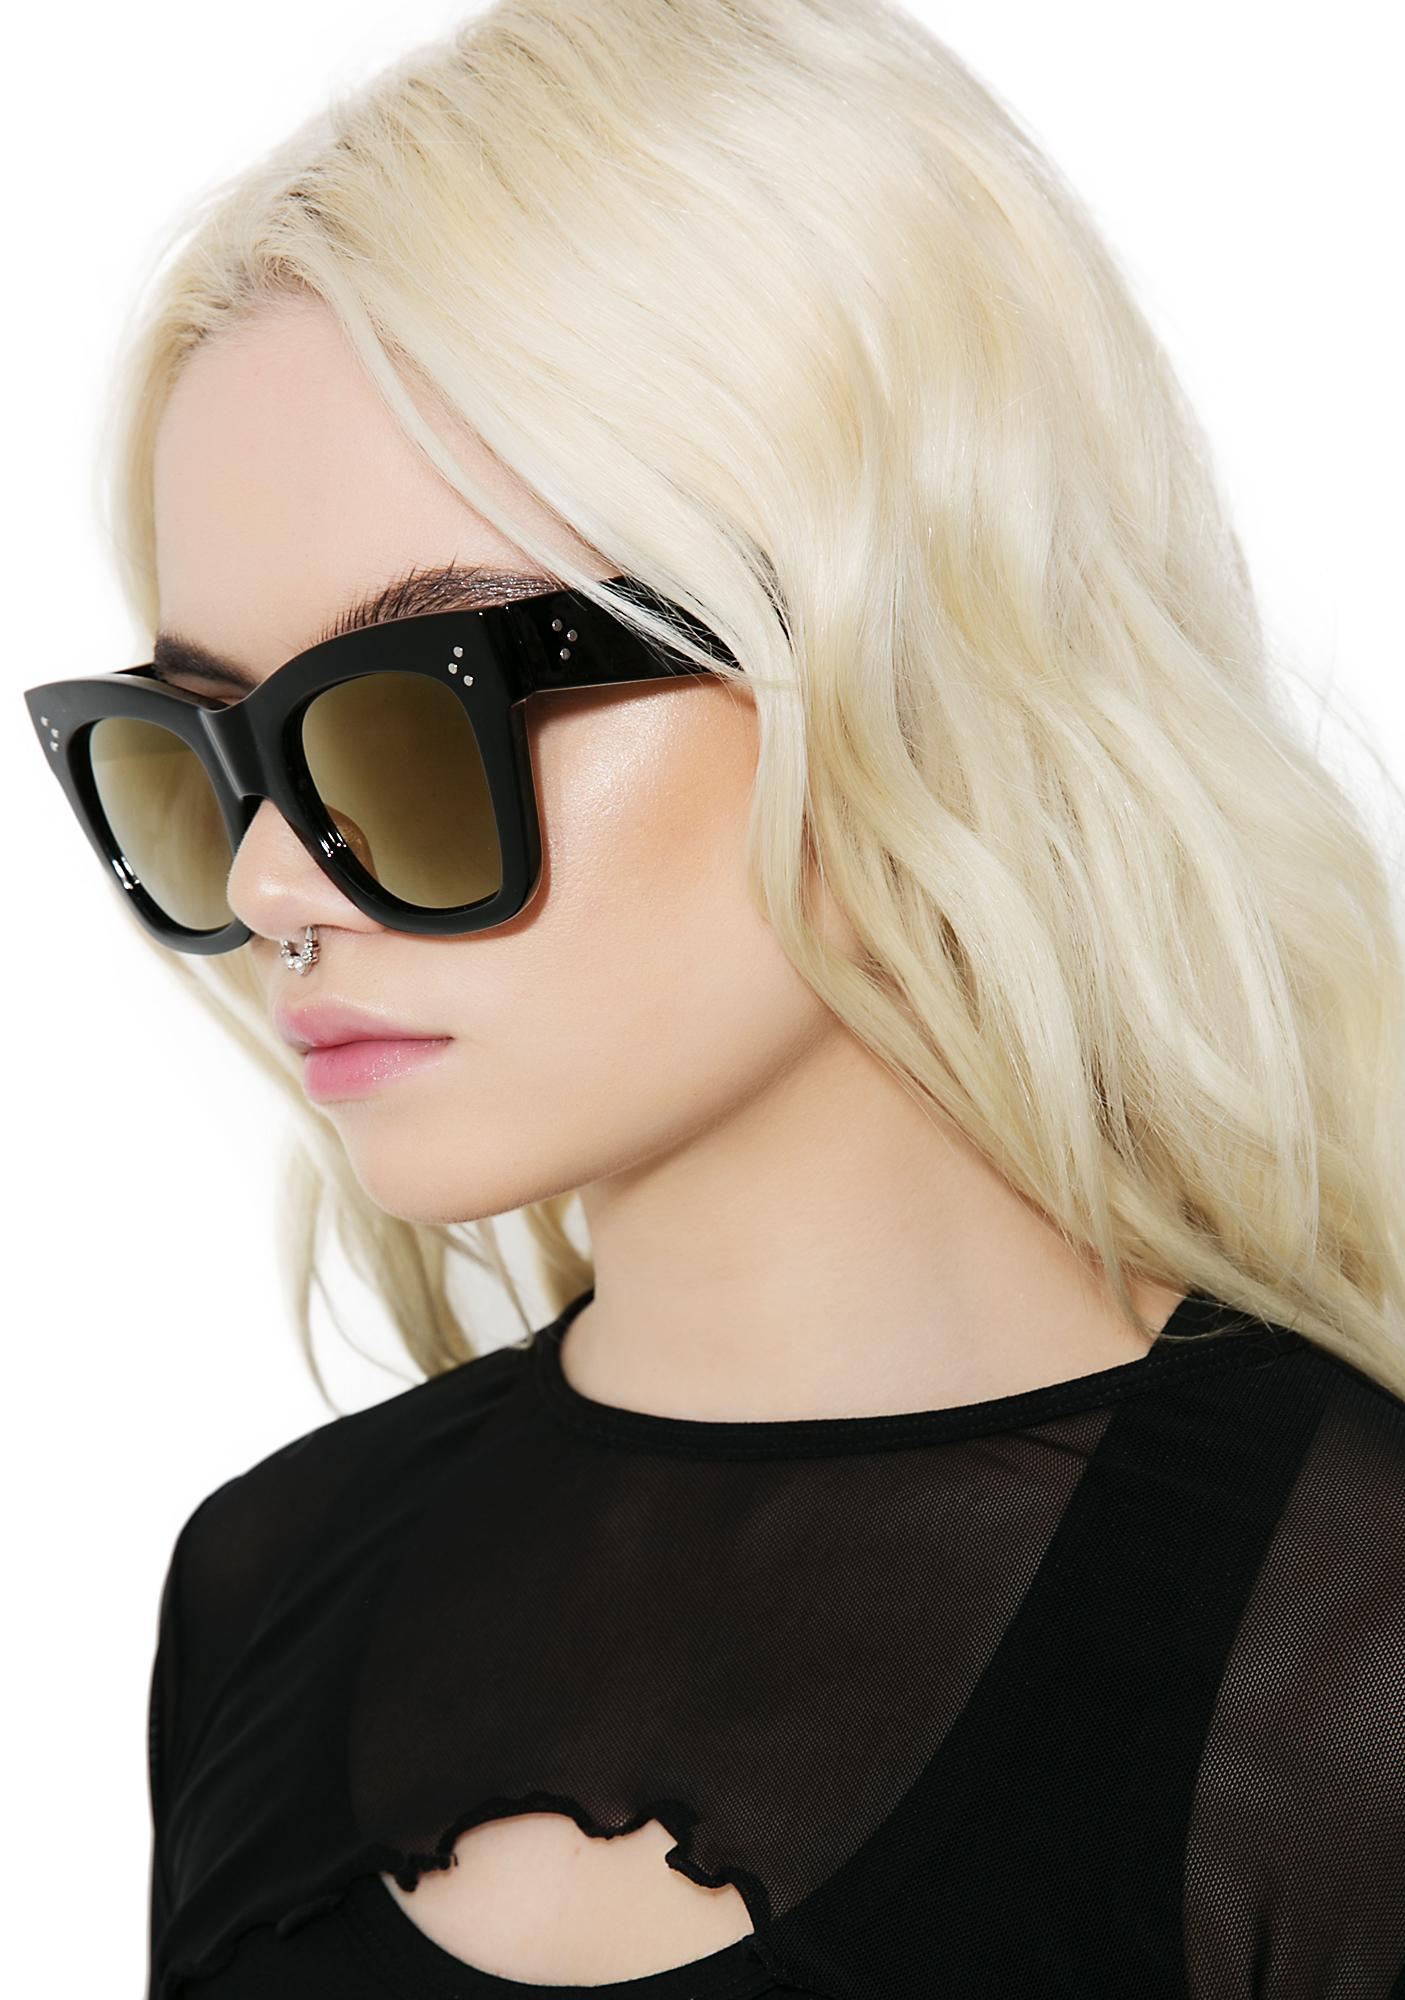 Up Close N' Personal Sunglasses